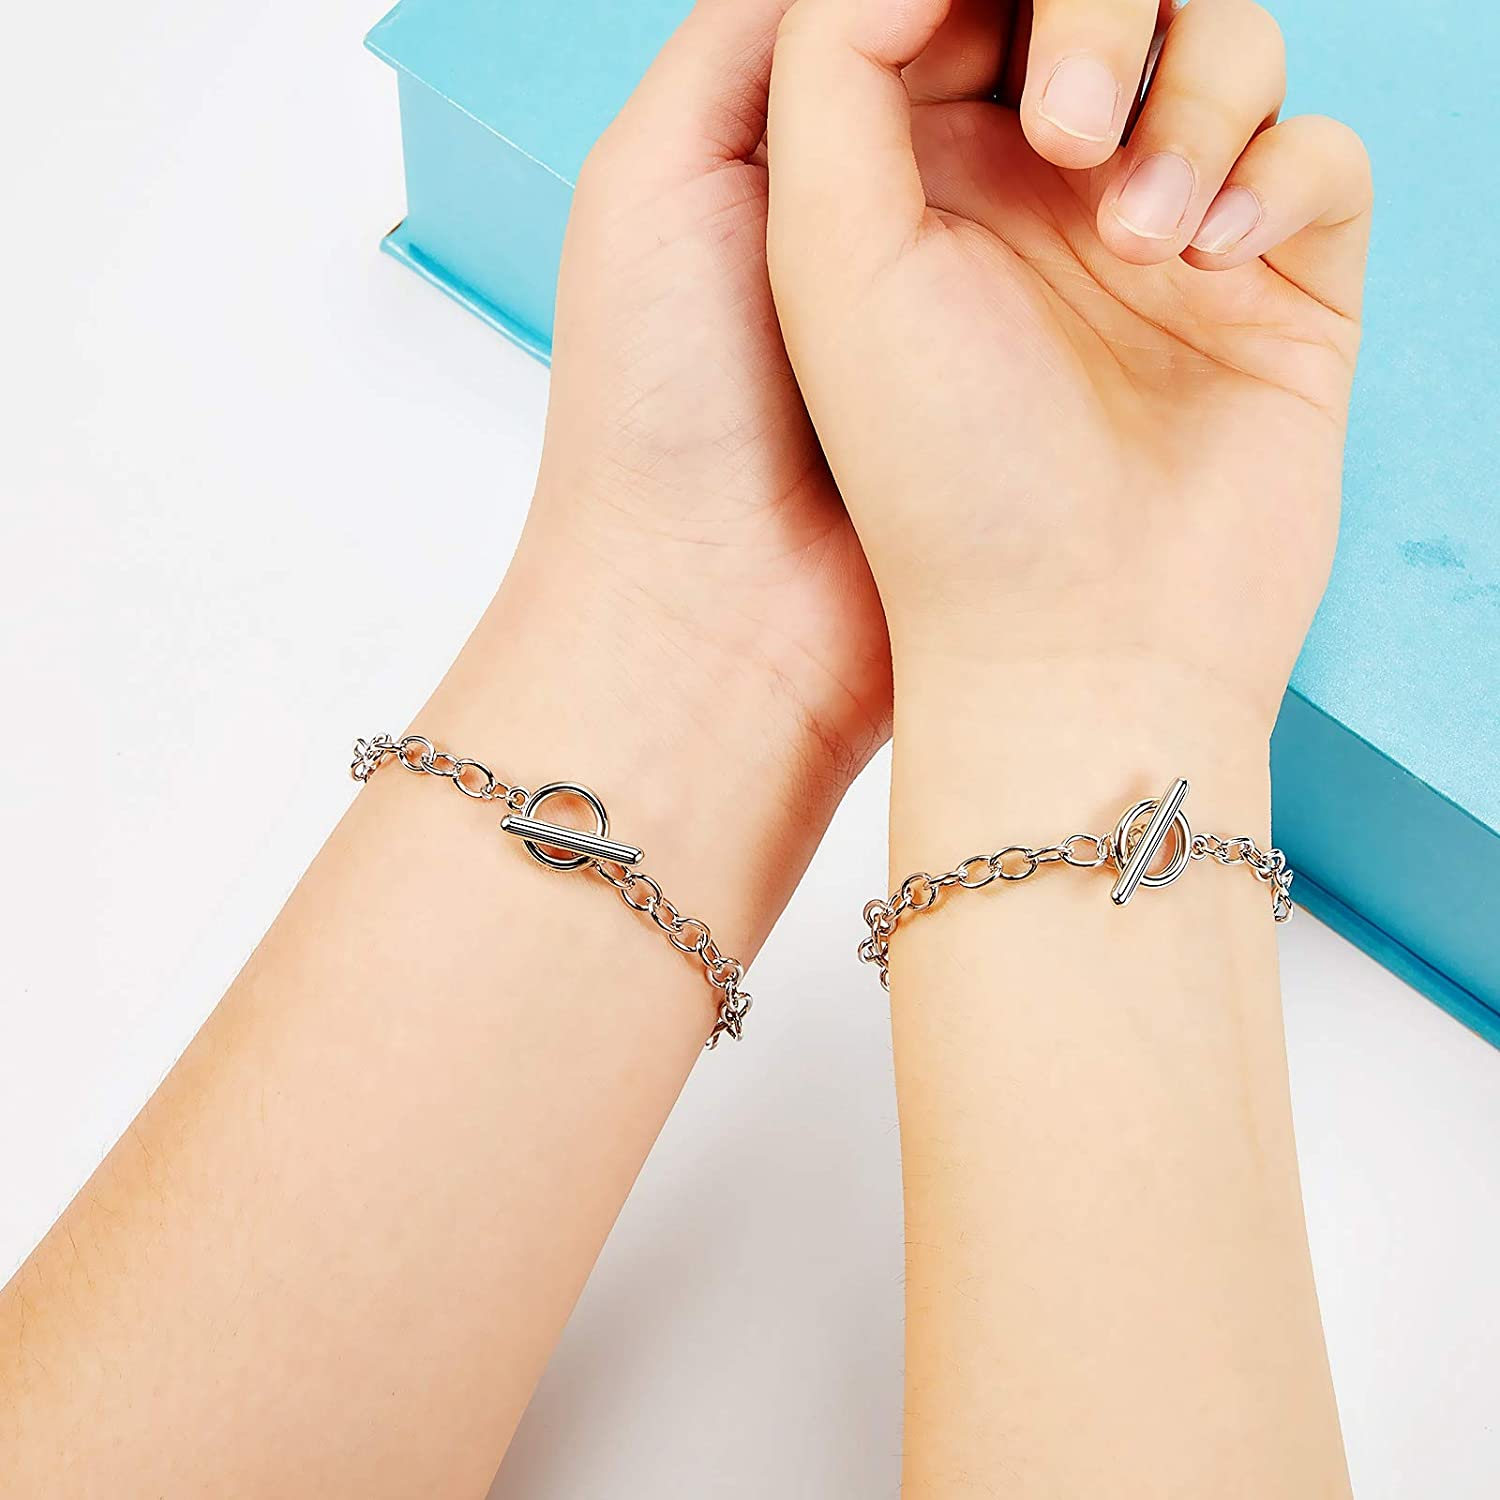 Silver 20 Pieces Chain Bracelets Stainless Steel Link Bracelet Round Link Chain Bracelets with OT Toggle Clasp Jewelry Bracelet Making Chain for Women Girls Christmas Birthday